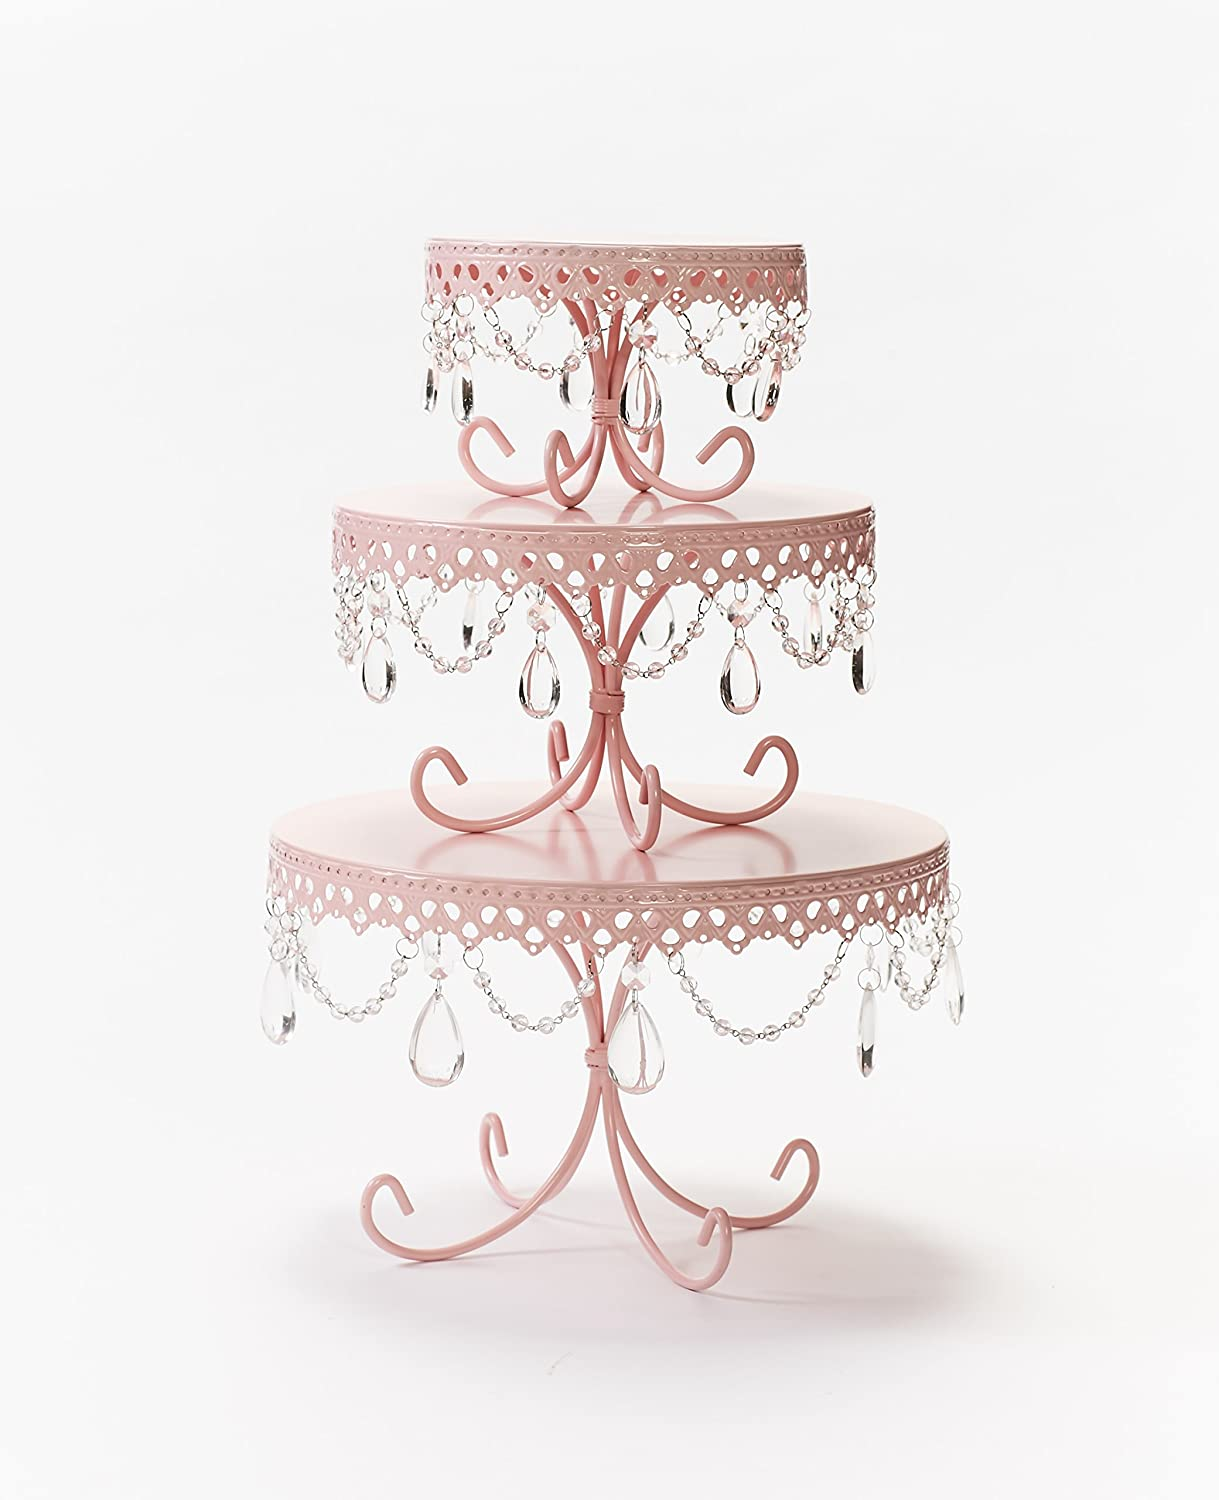 Amazon opulent treasures loopy cakes chandelier cake plates amazon opulent treasures loopy cakes chandelier cake plates set of 3 pink home improvement arubaitofo Image collections